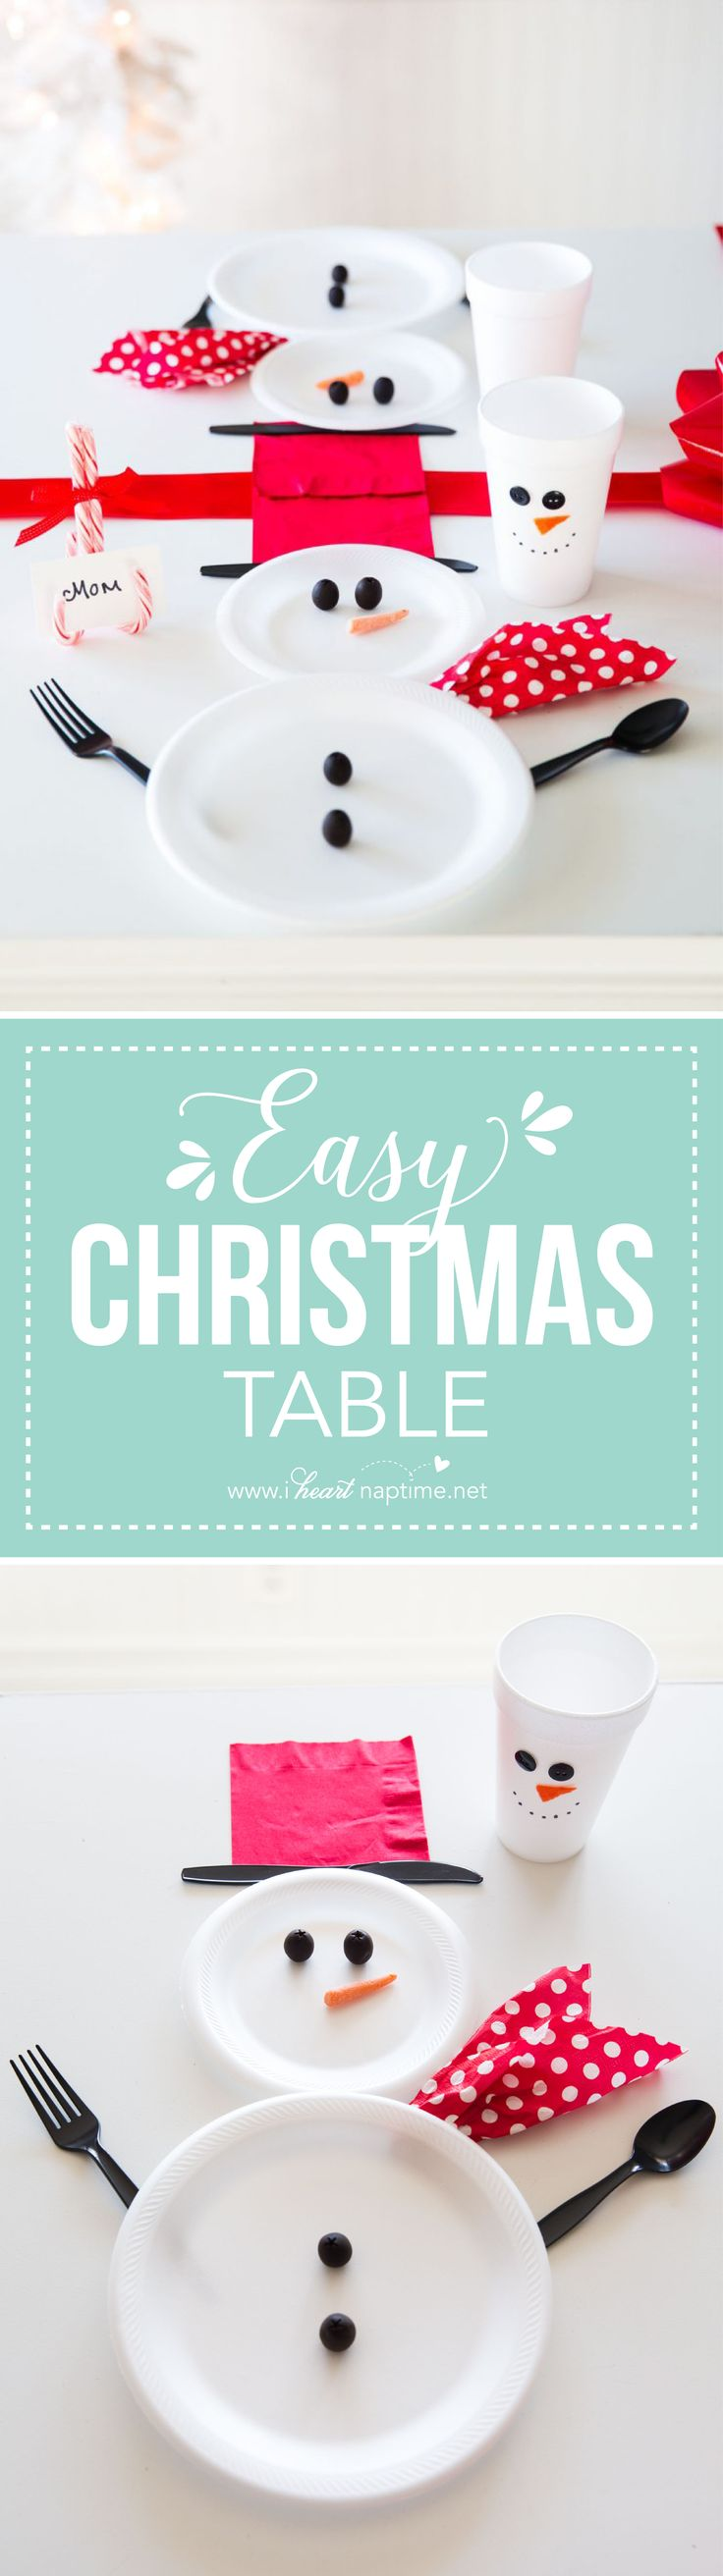 Wrapped Christmas Table and Snowman Plates... an easy and cute way to decorate your table for the holidays!